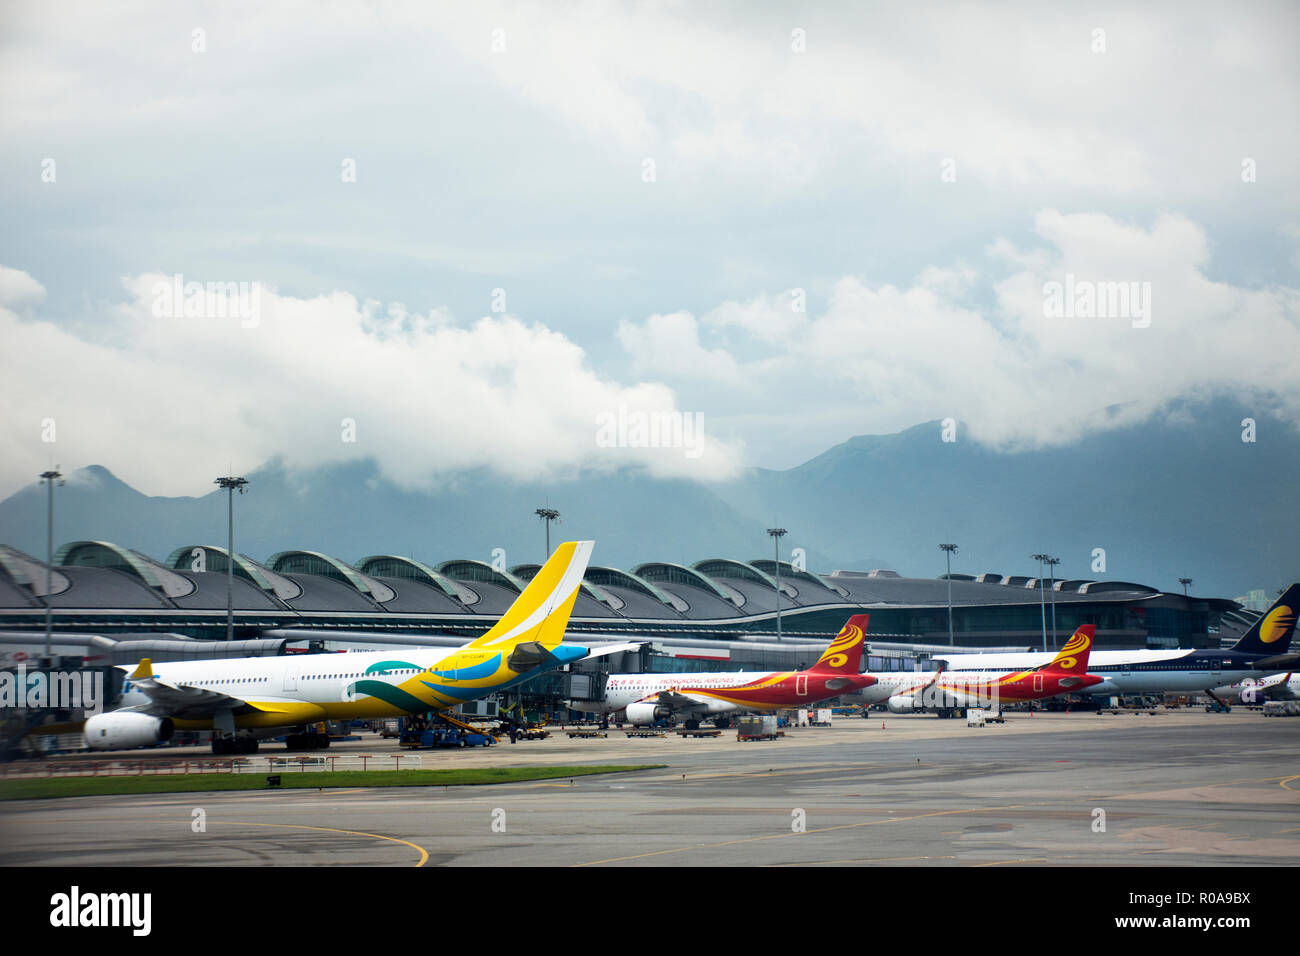 Airbus and plane on runway station waiting time for take off at Hong Kong International Airport on September 3, 2018 in Hong Kong, China - Stock Image